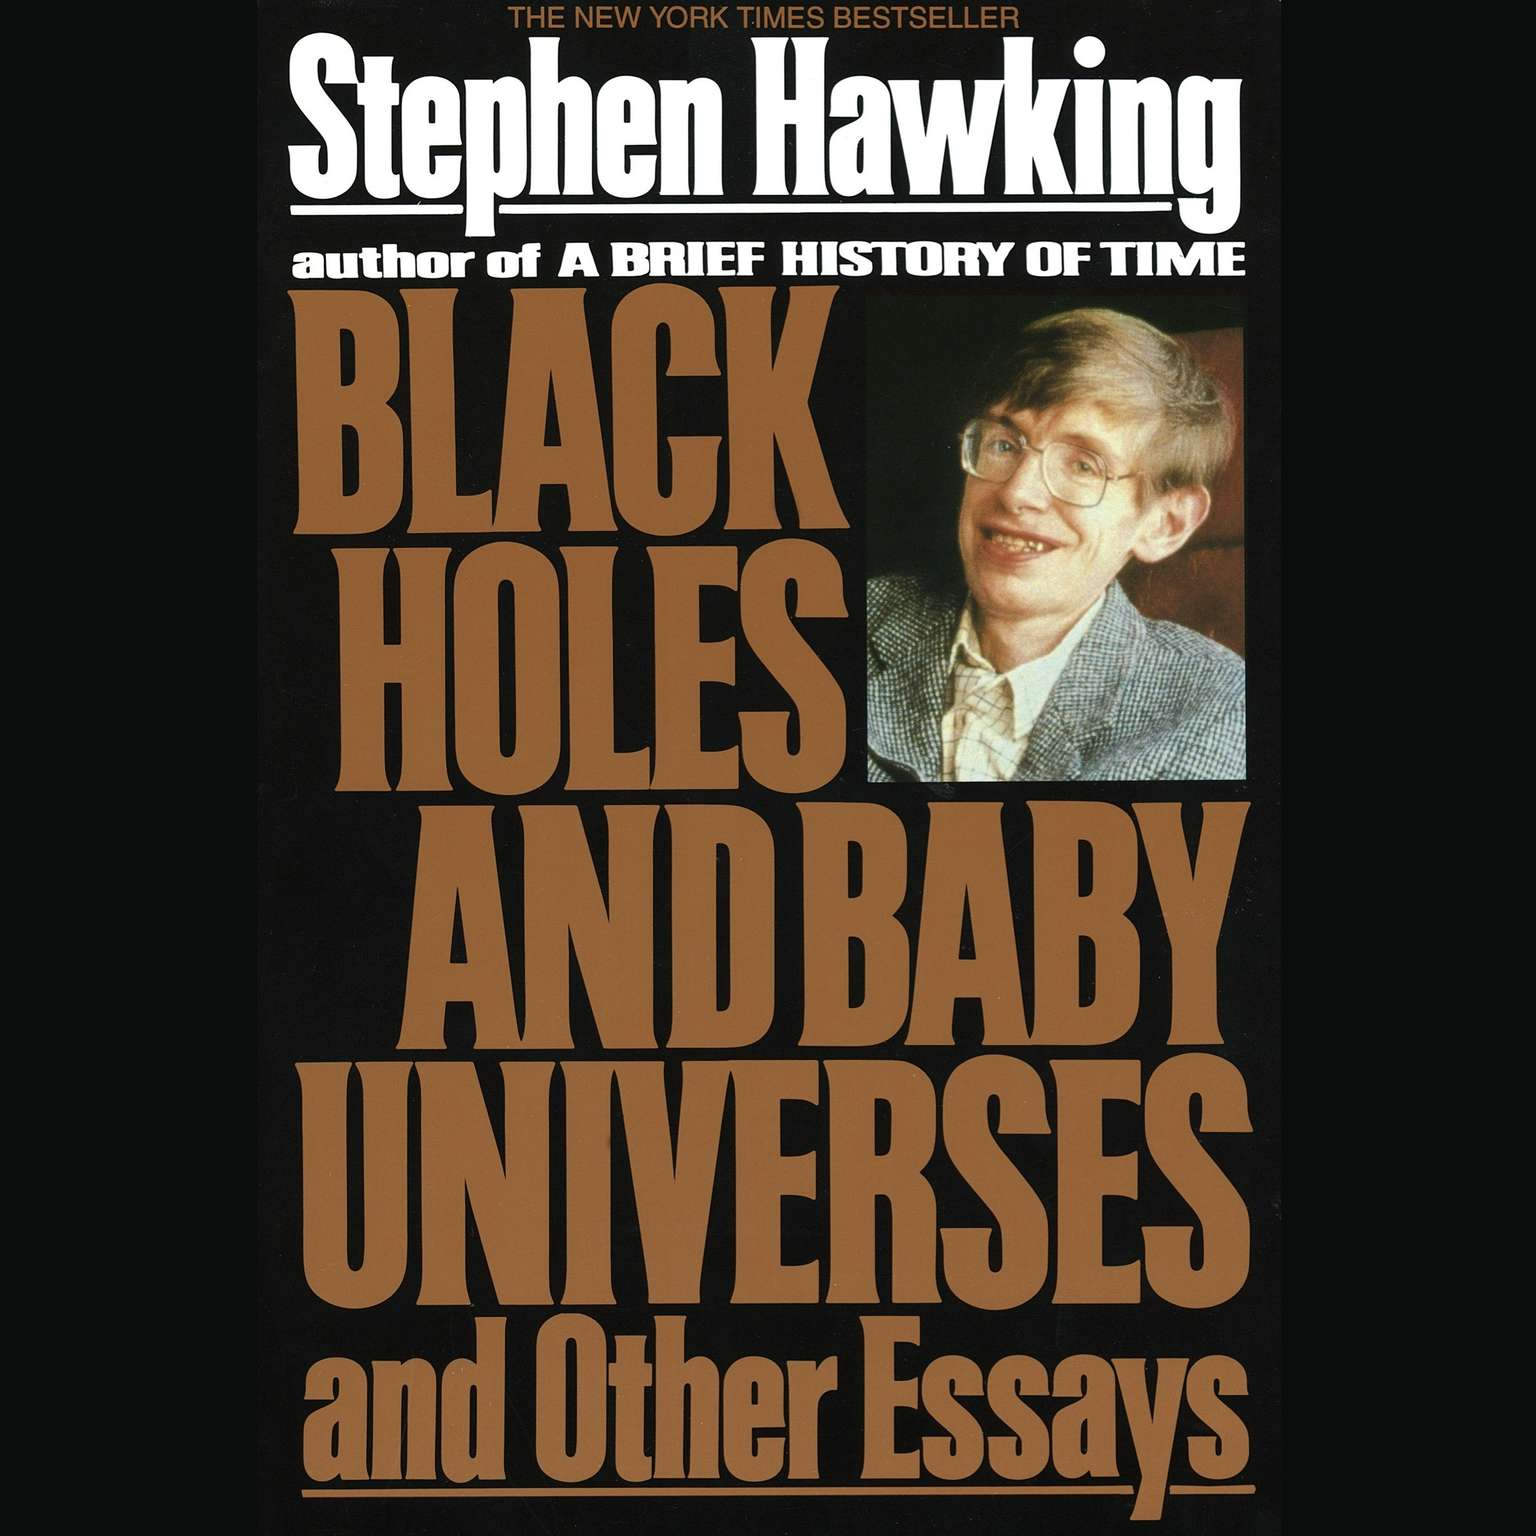 Printable Black Holes and Baby Universes and Other Essays: And Other Essays Audiobook Cover Art